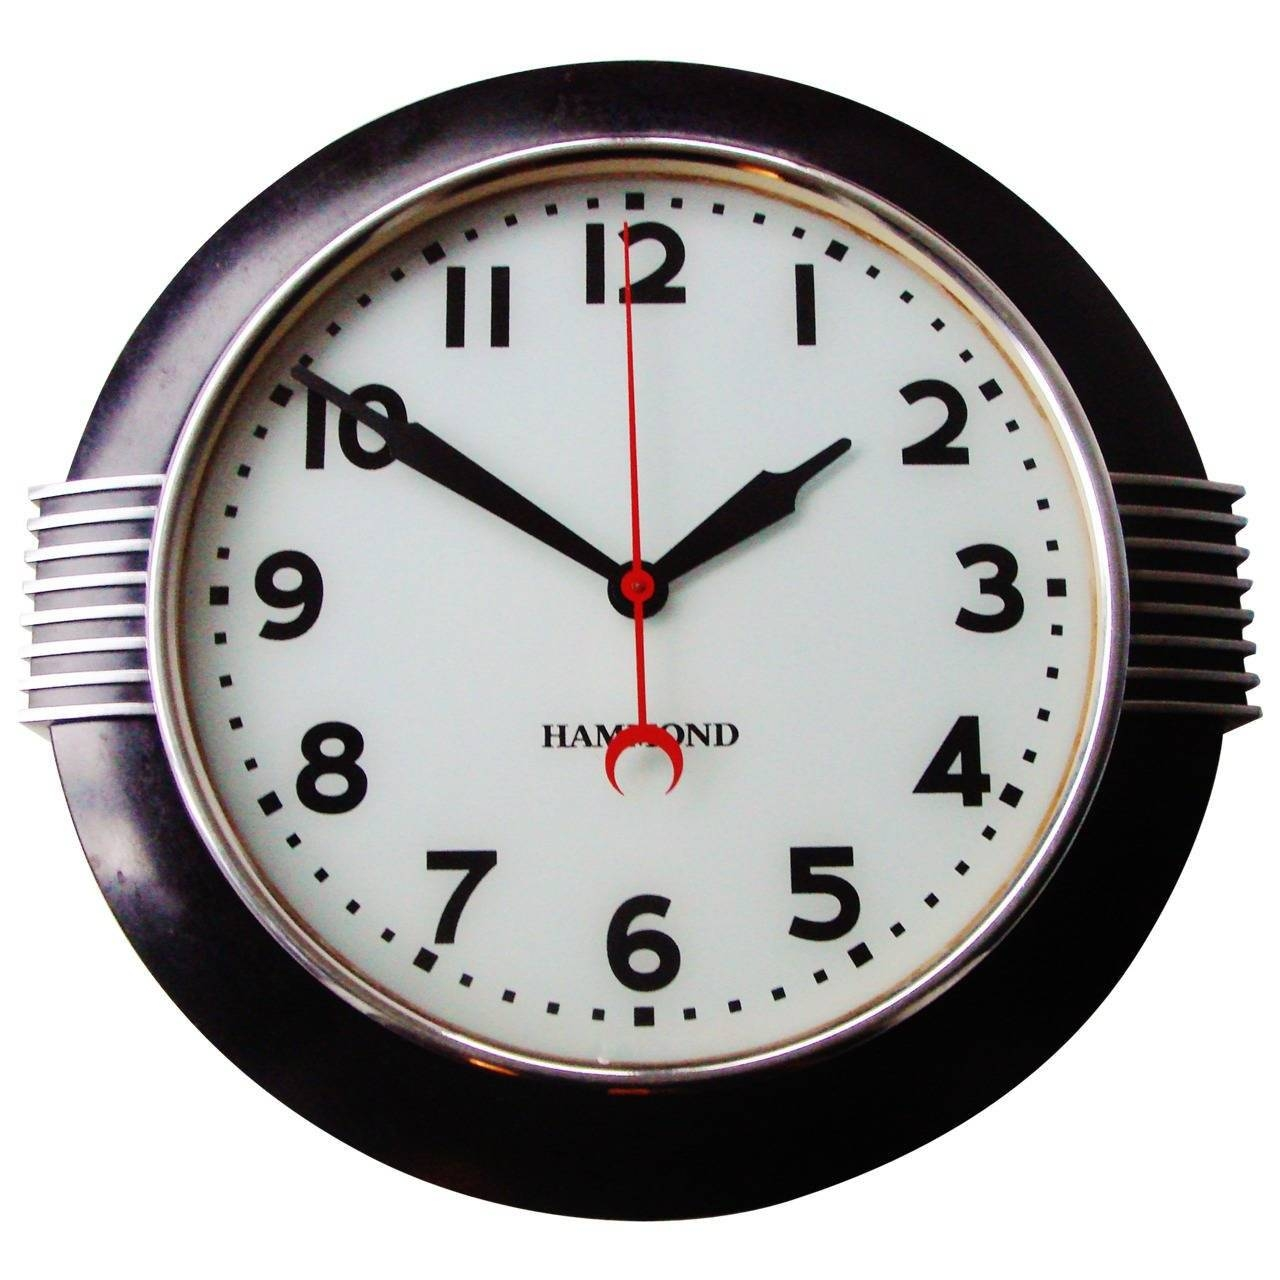 Large American Art Deco Chrome And Black Illuminated Dial Wall Regarding Latest Large Art Deco Wall Clocks (View 13 of 30)